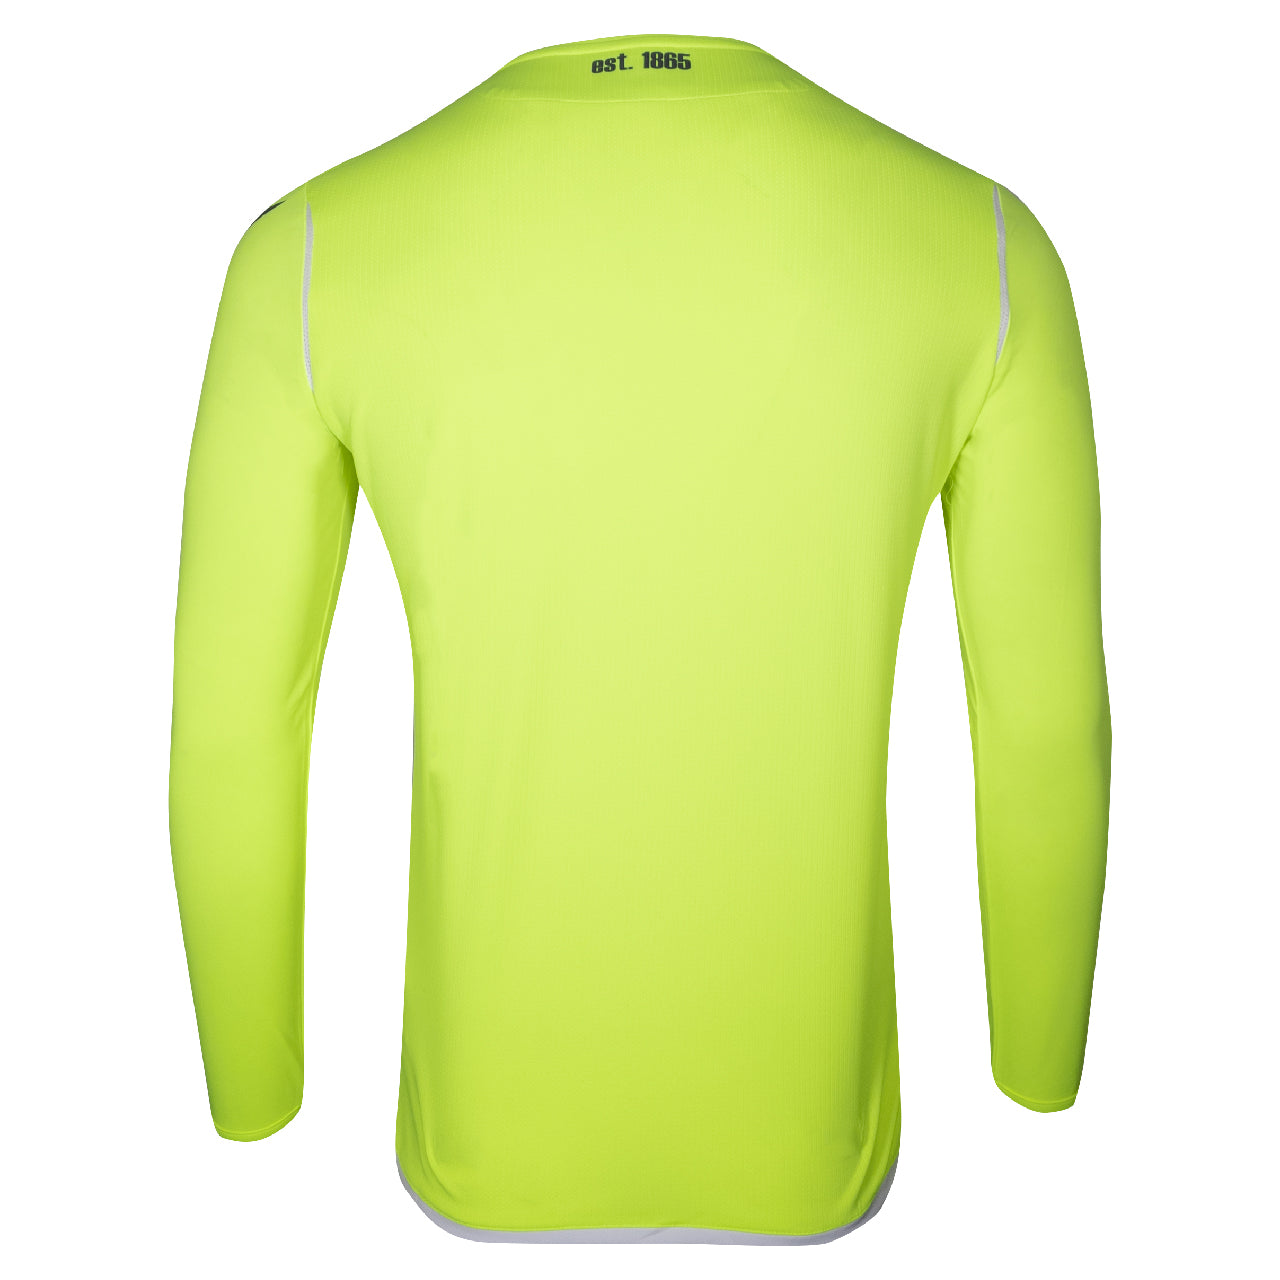 NFFC Junior Yellow Goalkeeper Shirt 2019/20